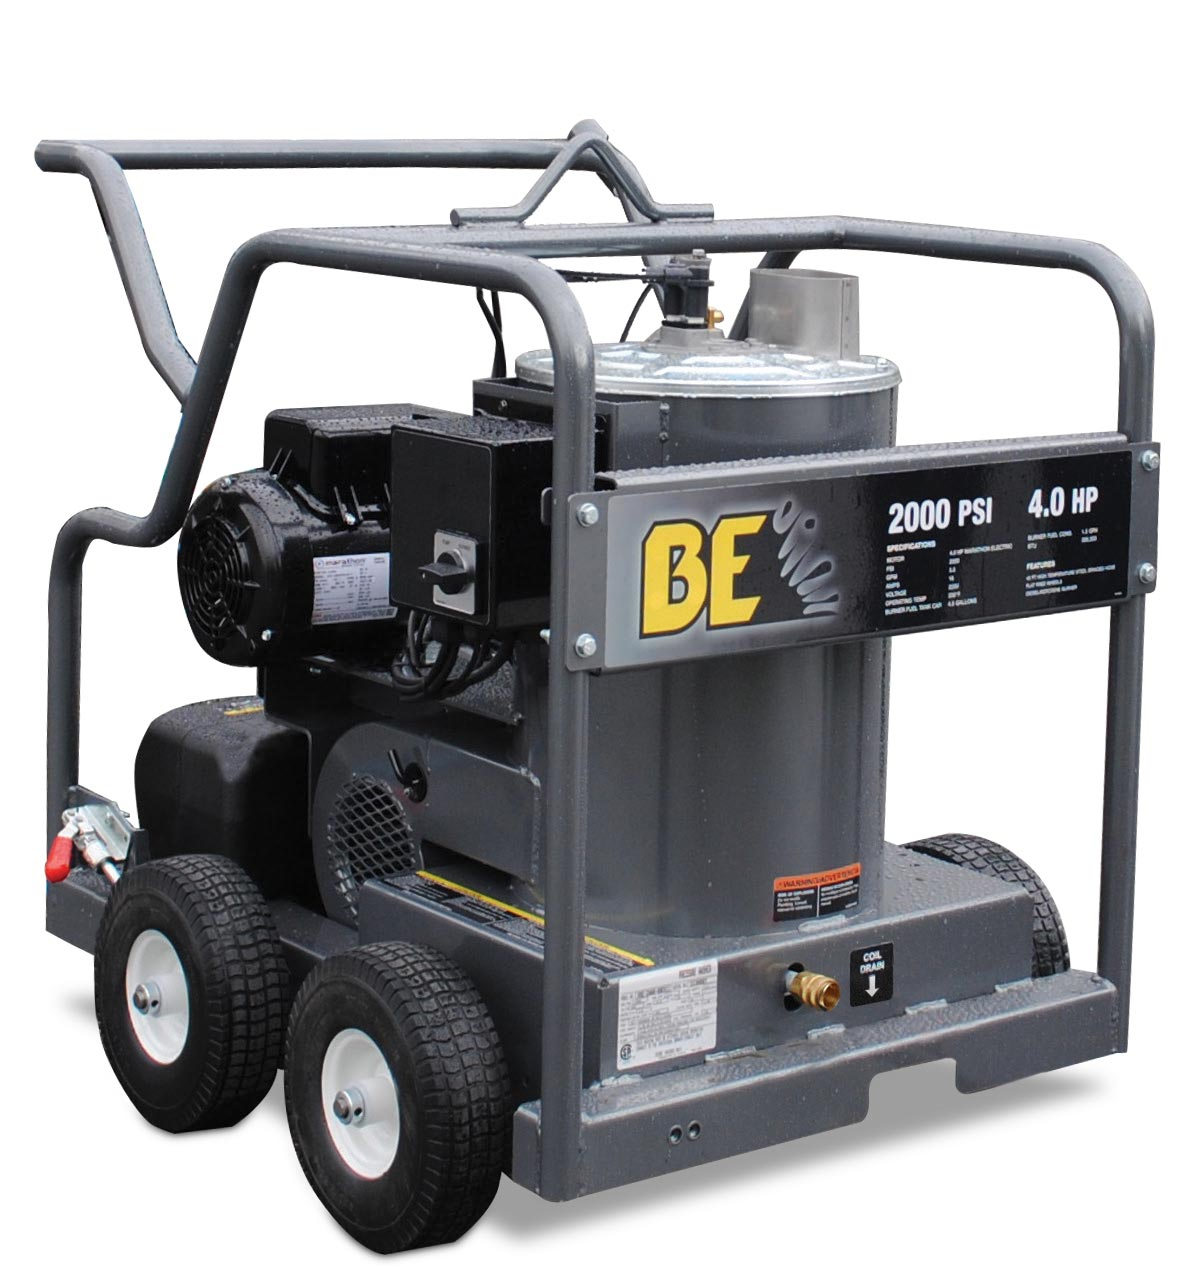 .BE Pressure HW204EMD Hot Water Pressure Washer Marathon Electric Motor 2000psi 3gpm 230-240 volts Mi-T-M HSE-2003-OMG10 (half price shipping)